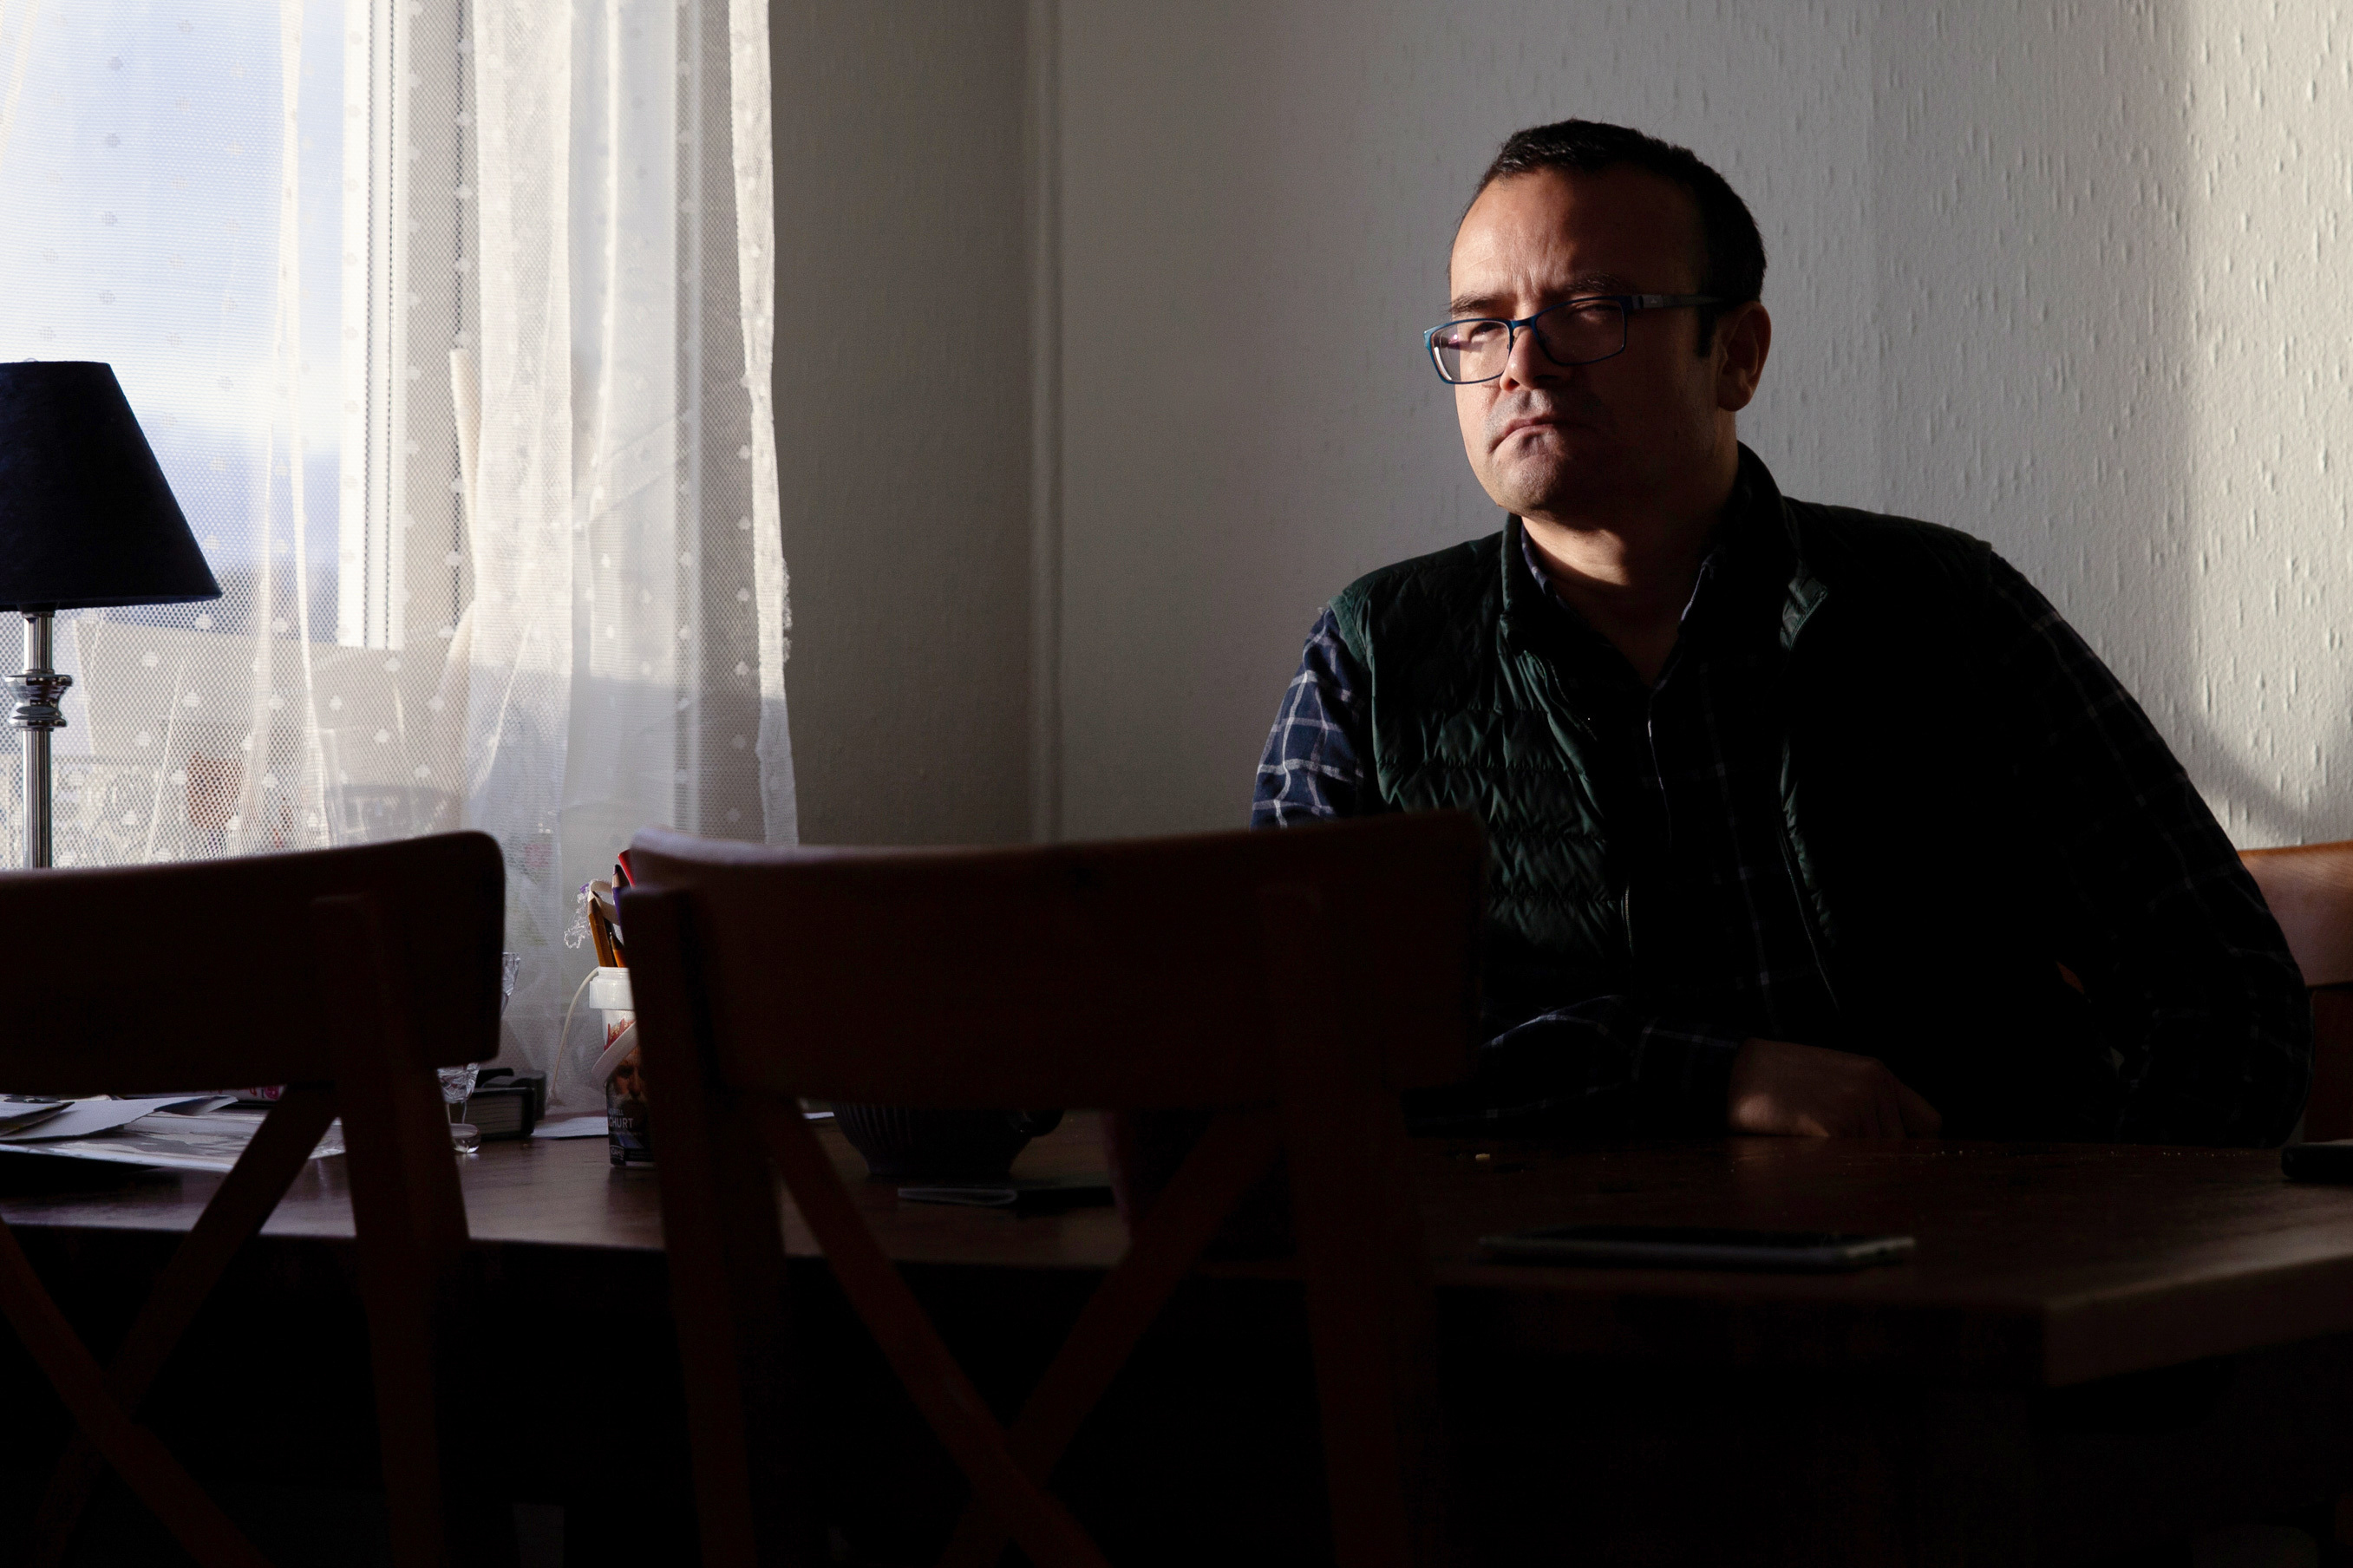 Abduweli Ayup, a Uyghur national, linguist and activist at his home in Bergen, Norway on January 21, 2021.